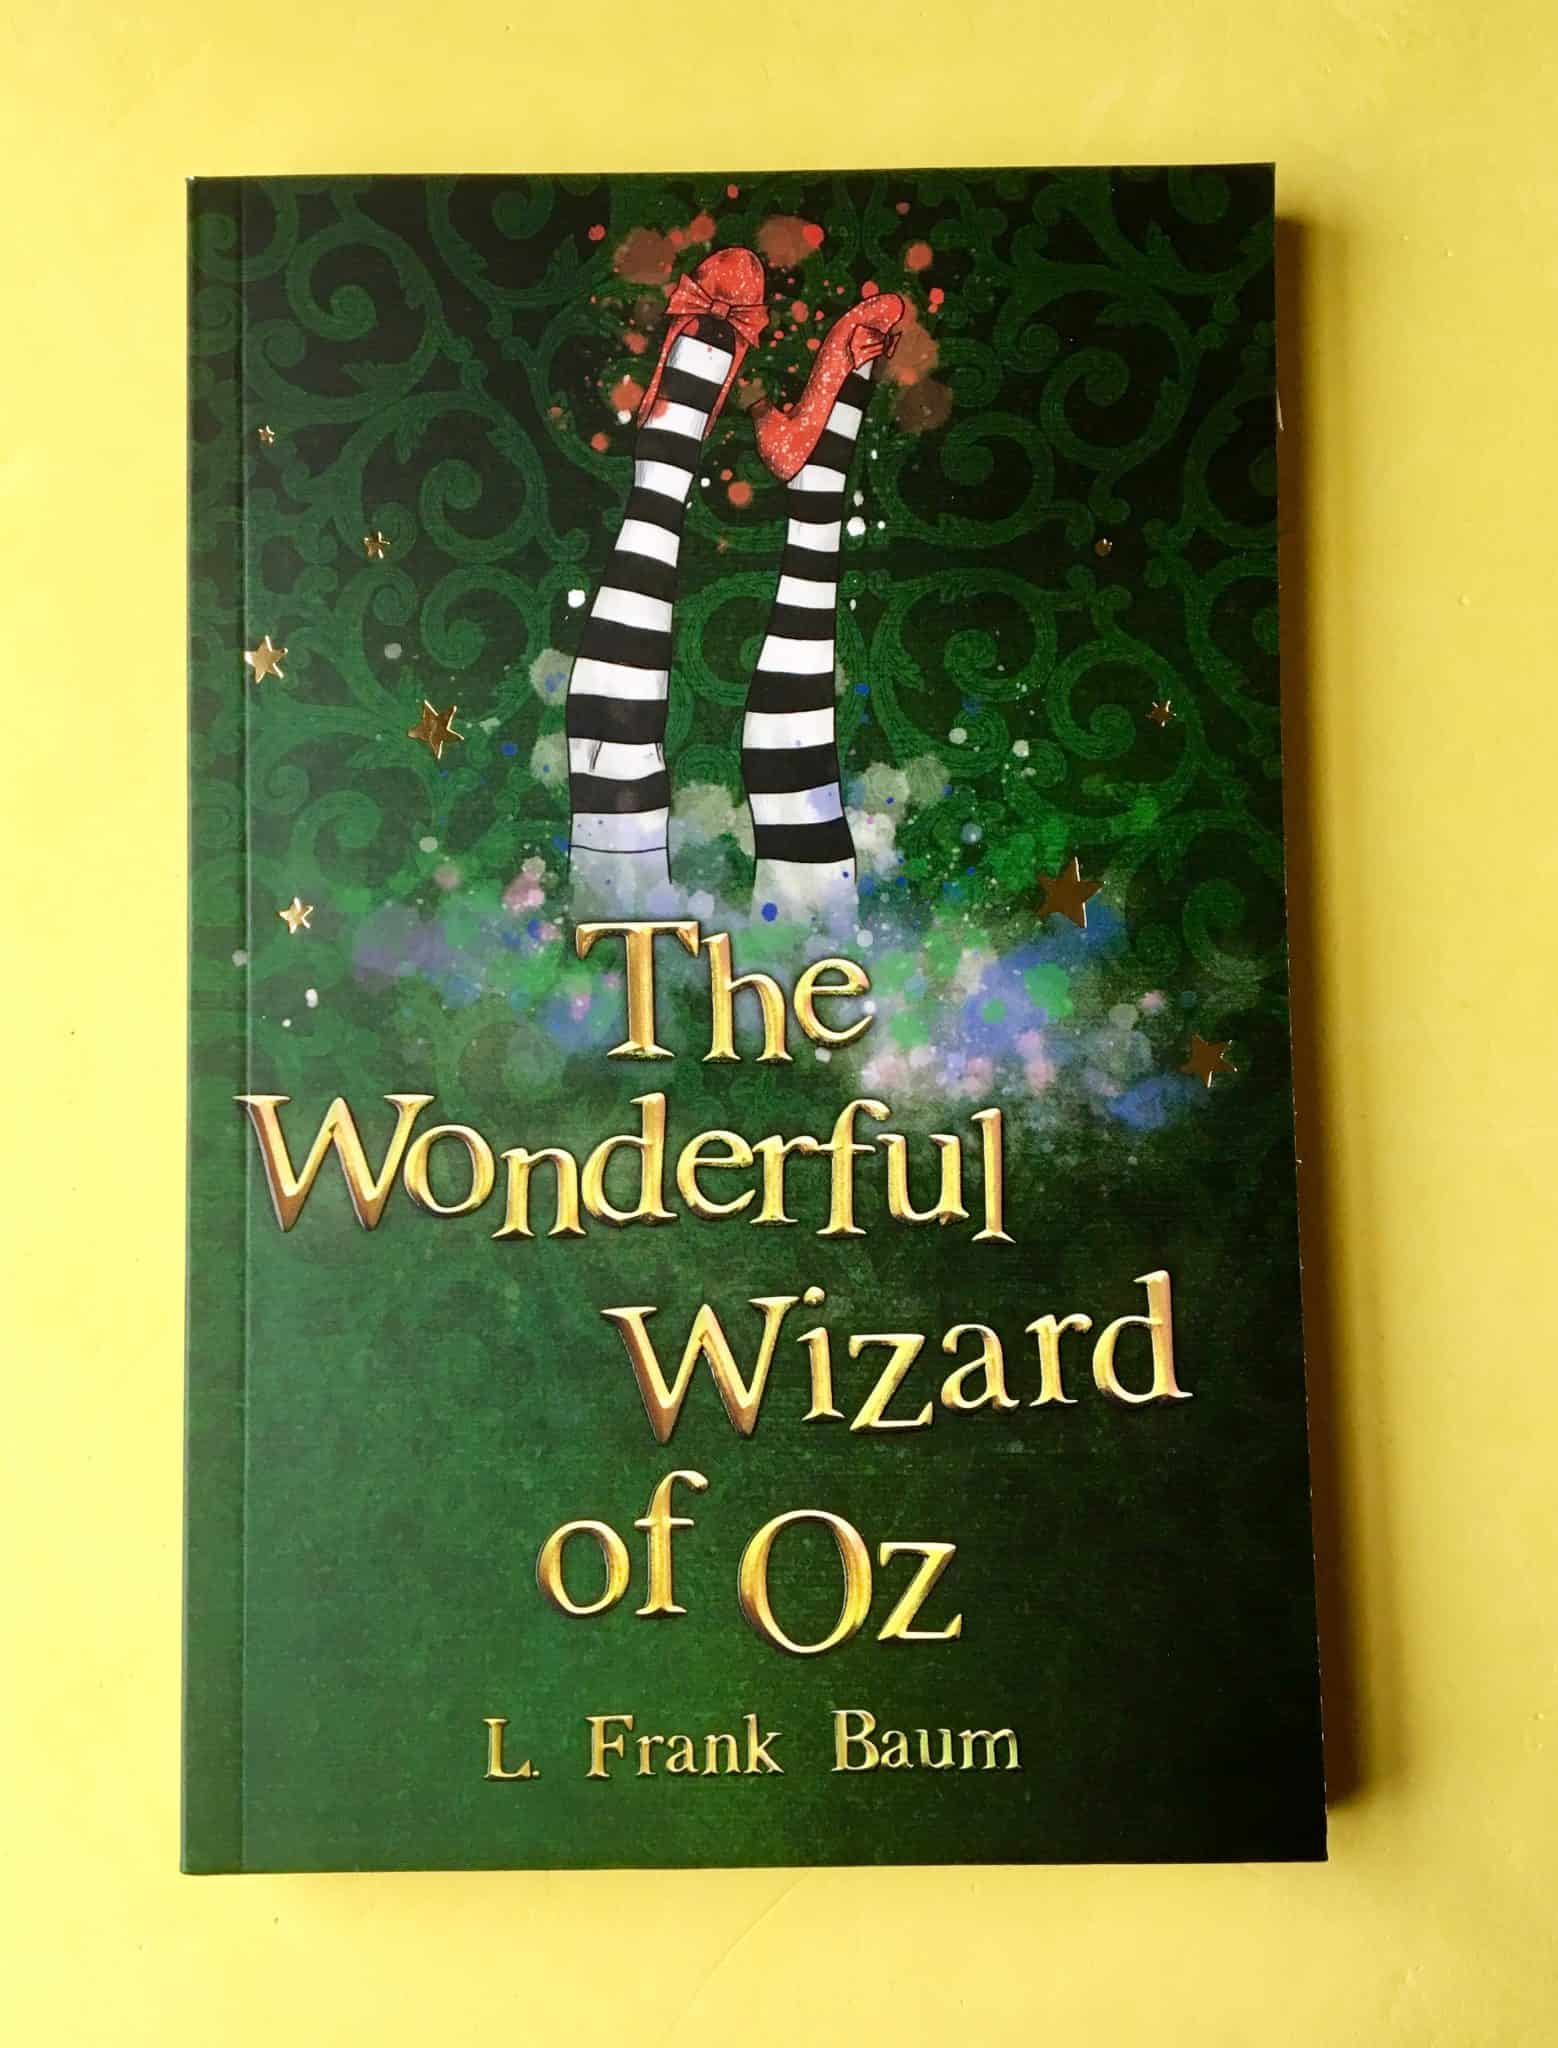 Book Review & Giveaway: The Wonderful Wizard of Oz by L. Frank Baum